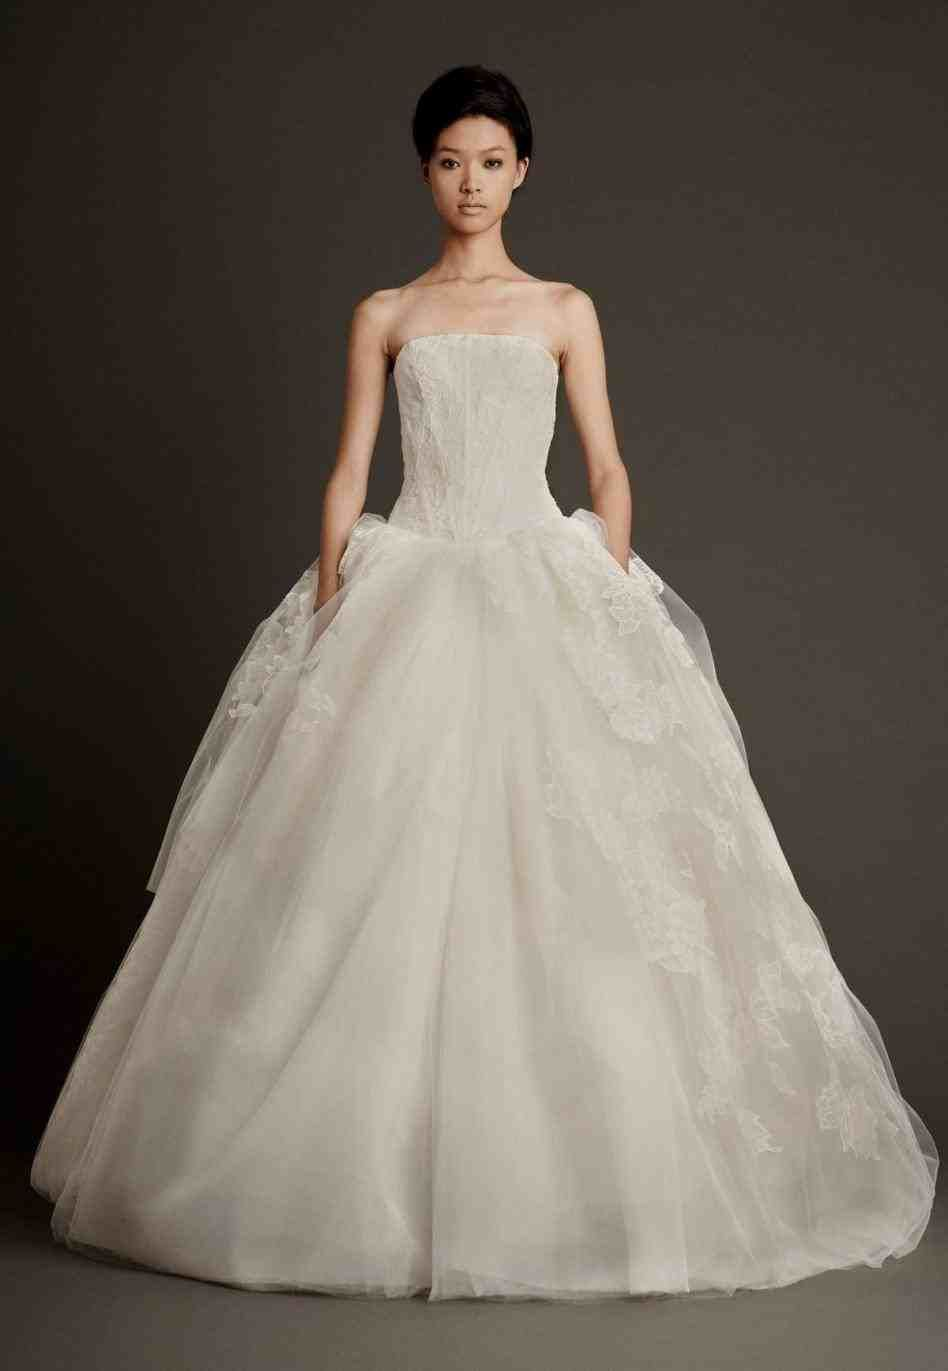 Wedding dresses vera wang in weddings pinterest